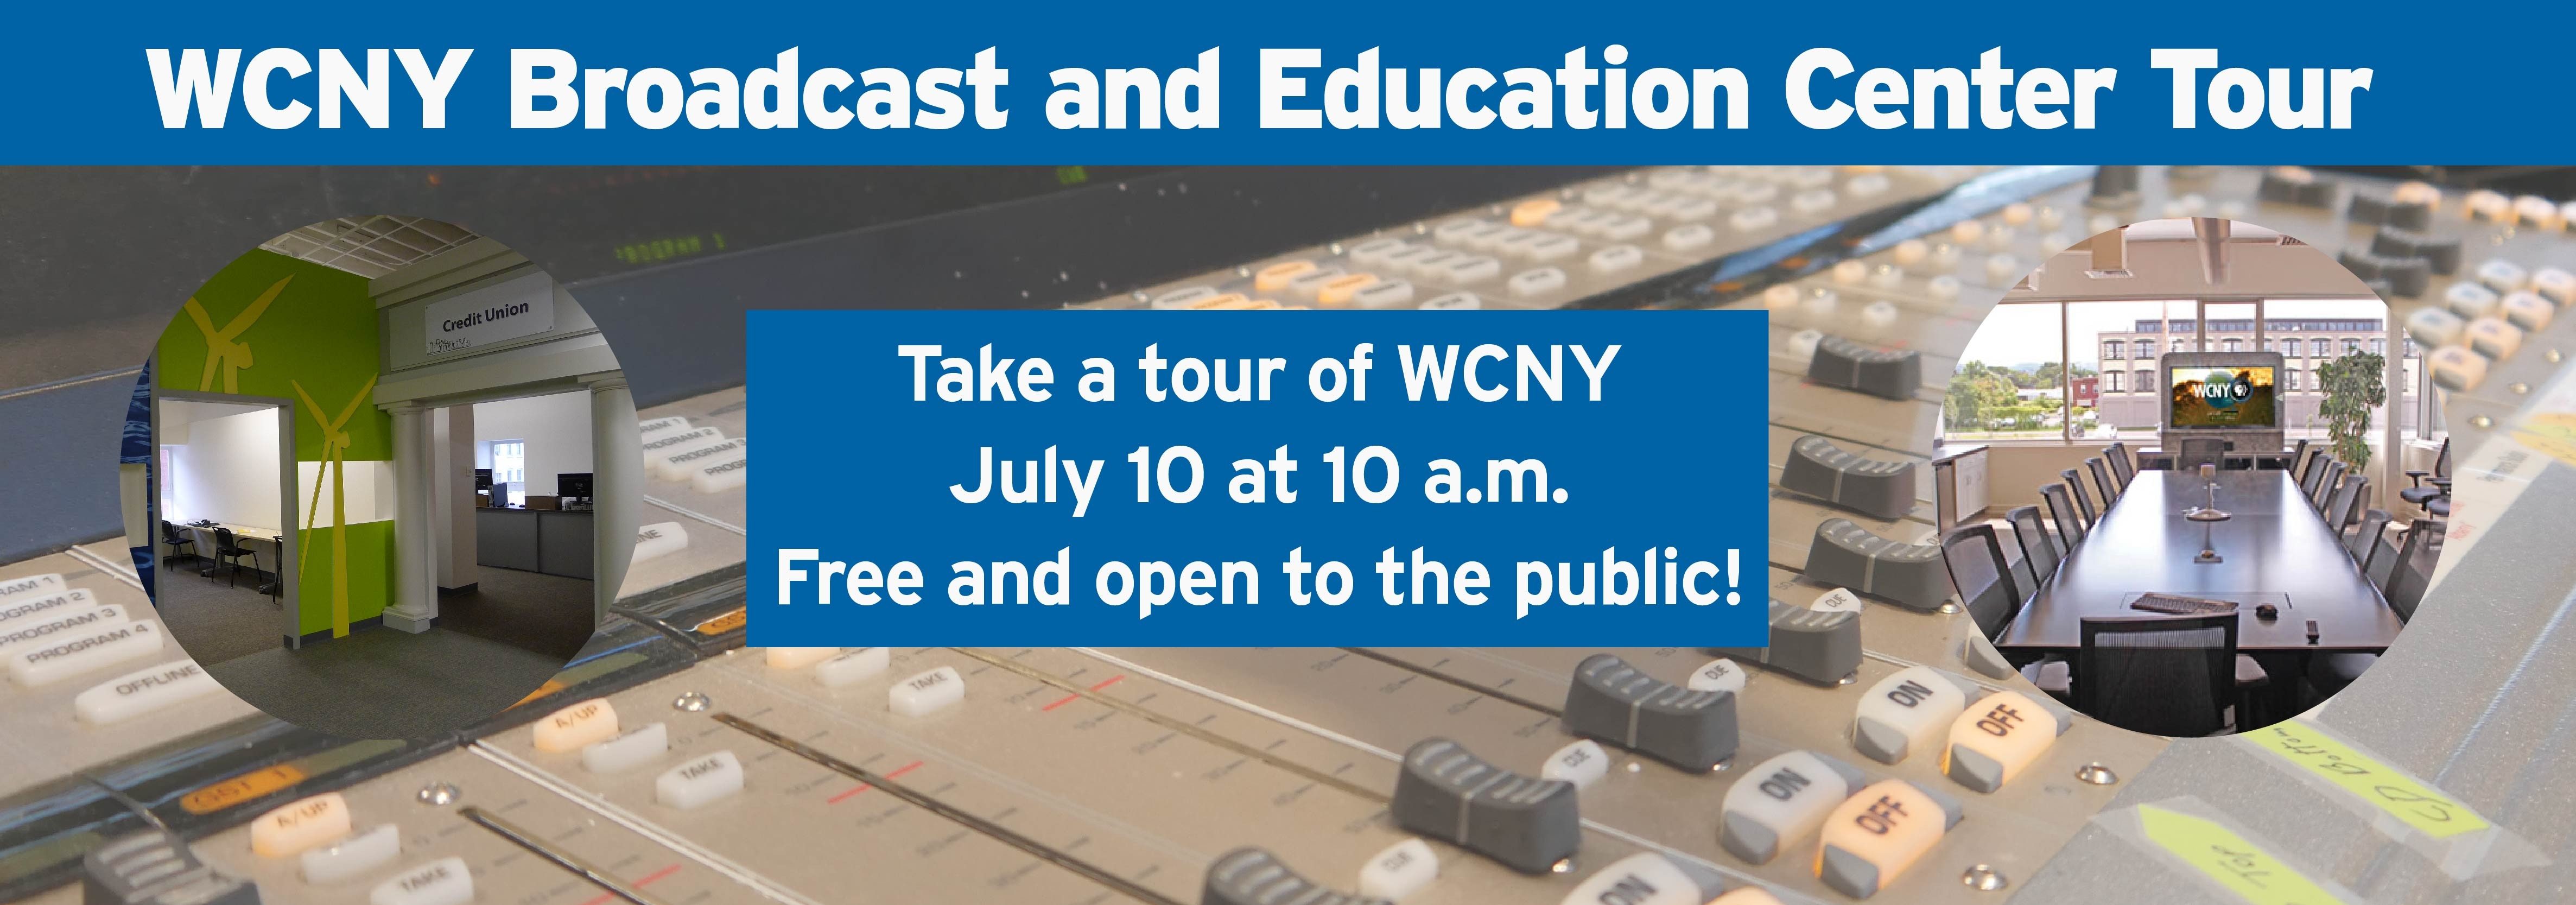 Tour WCNY's Broadcast and Education Center July 10 at 10 a.m.